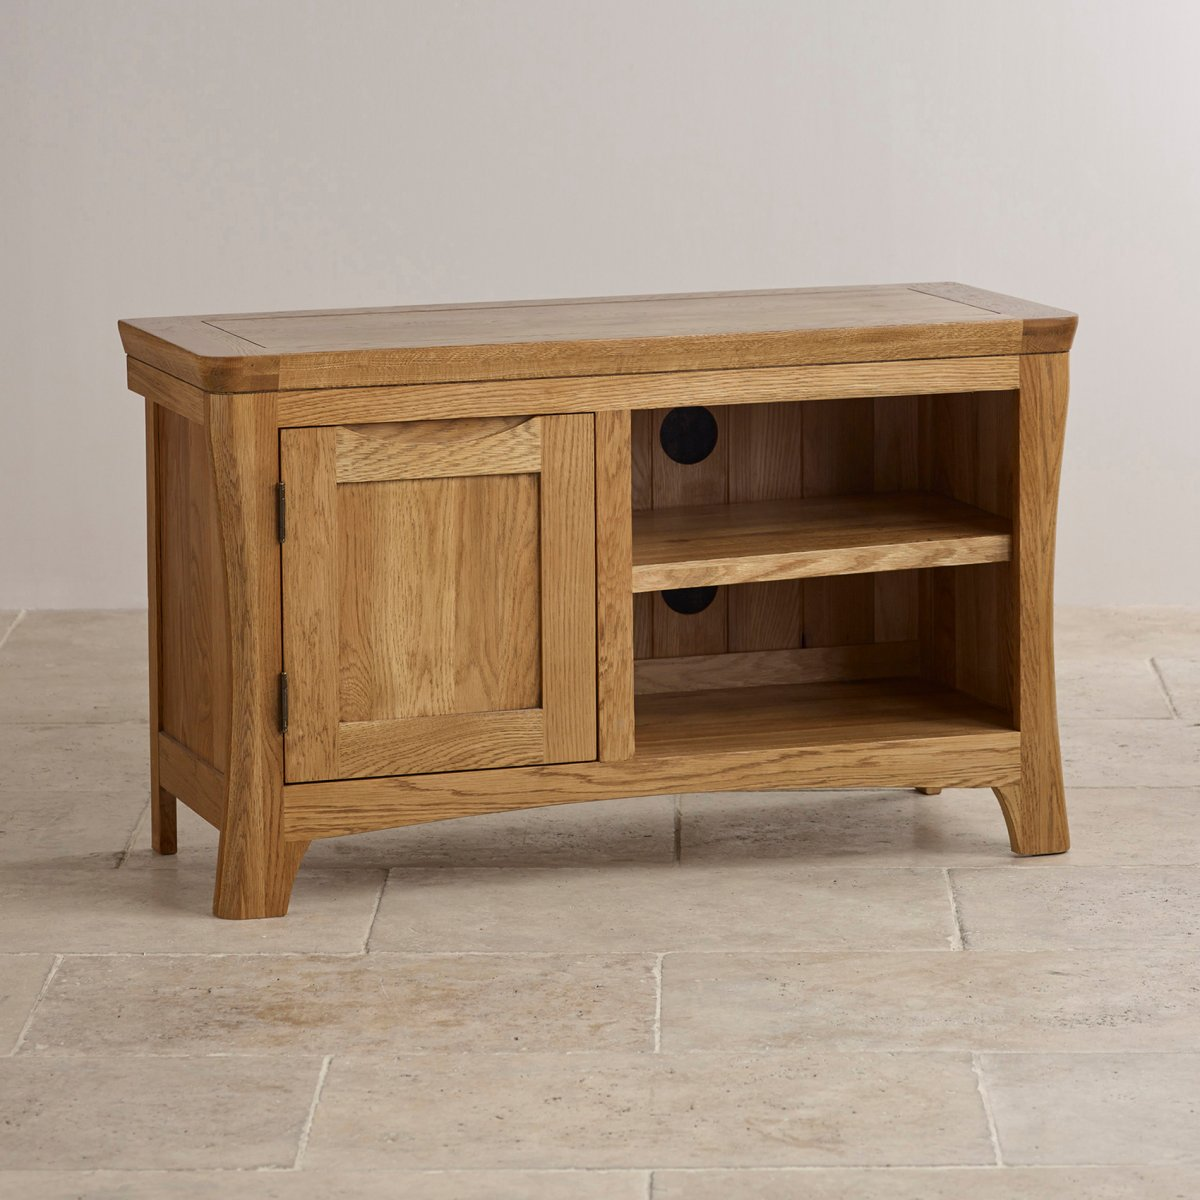 Rustic Oak Kitchen Cabinets: Orrick TV Cabinet In Rustic Solid Oak